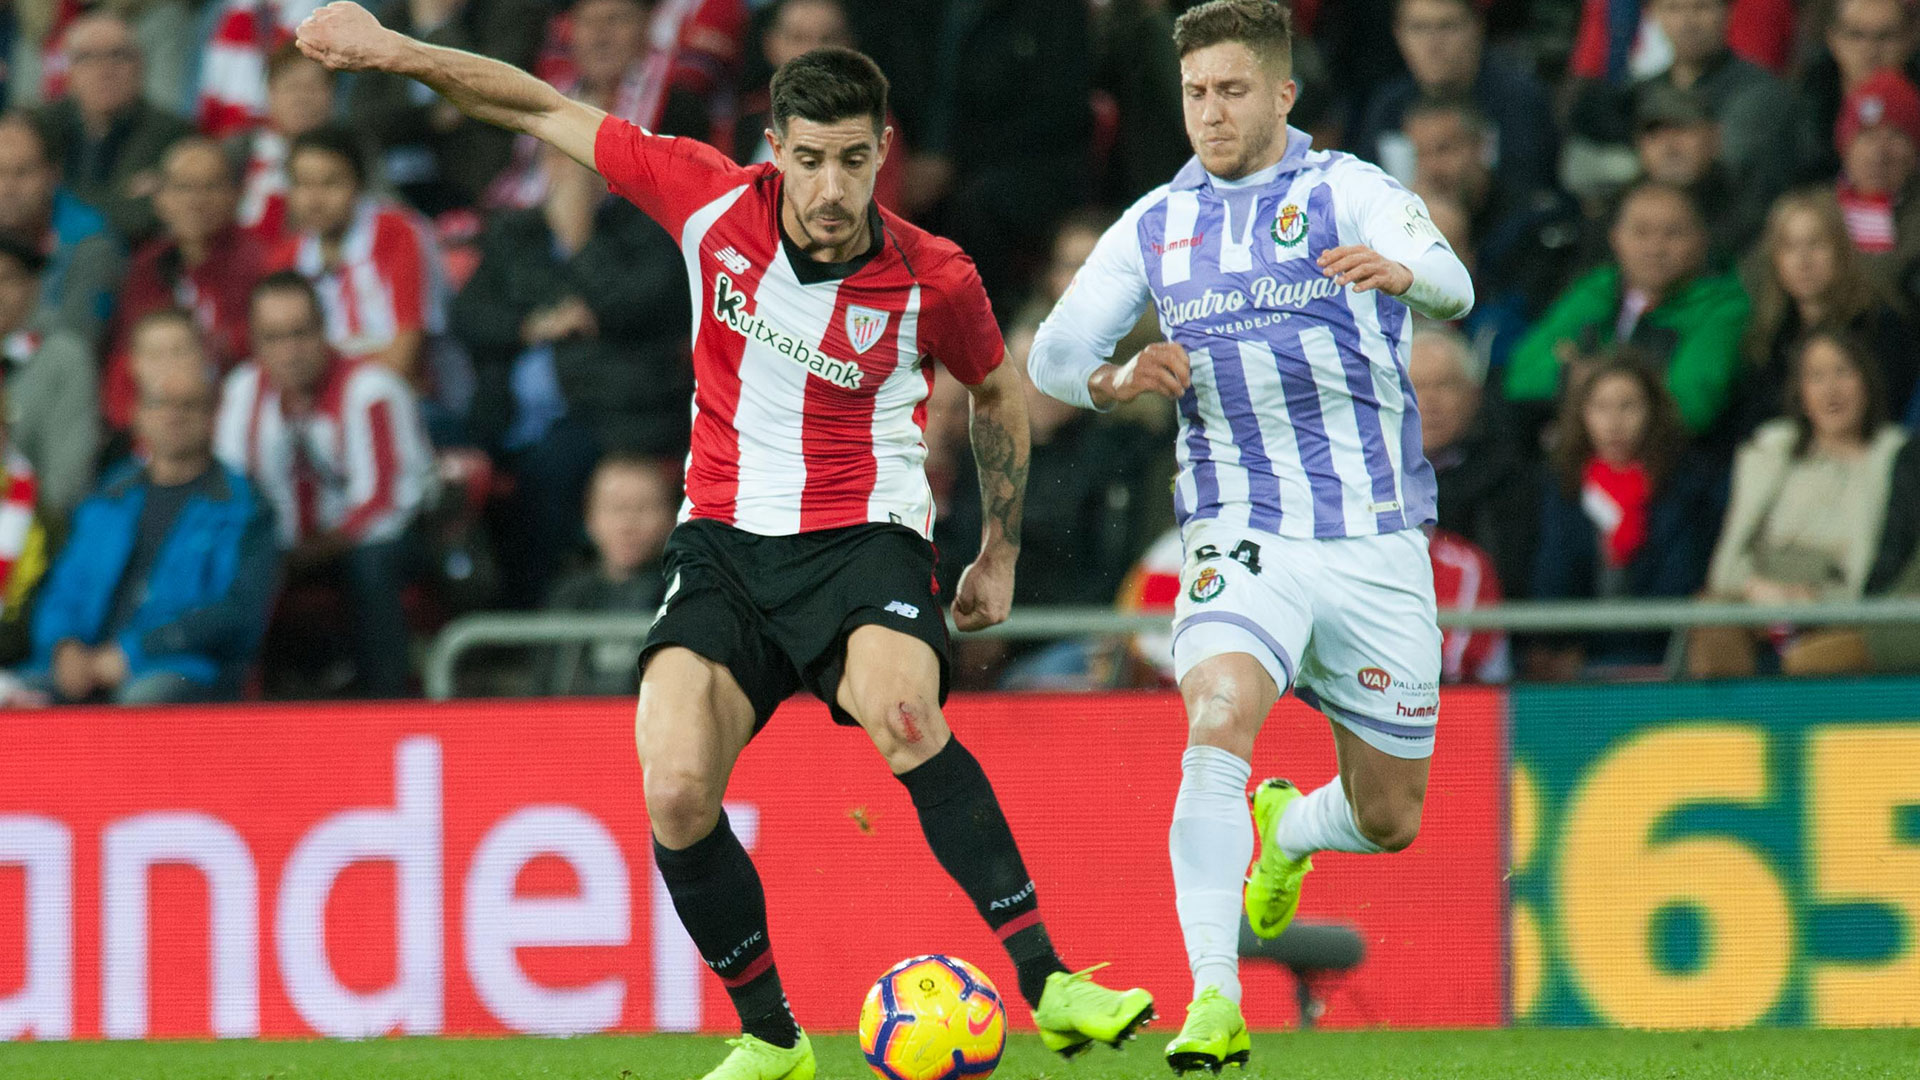 Real Valladolid – Athletic Club: ticket retirement